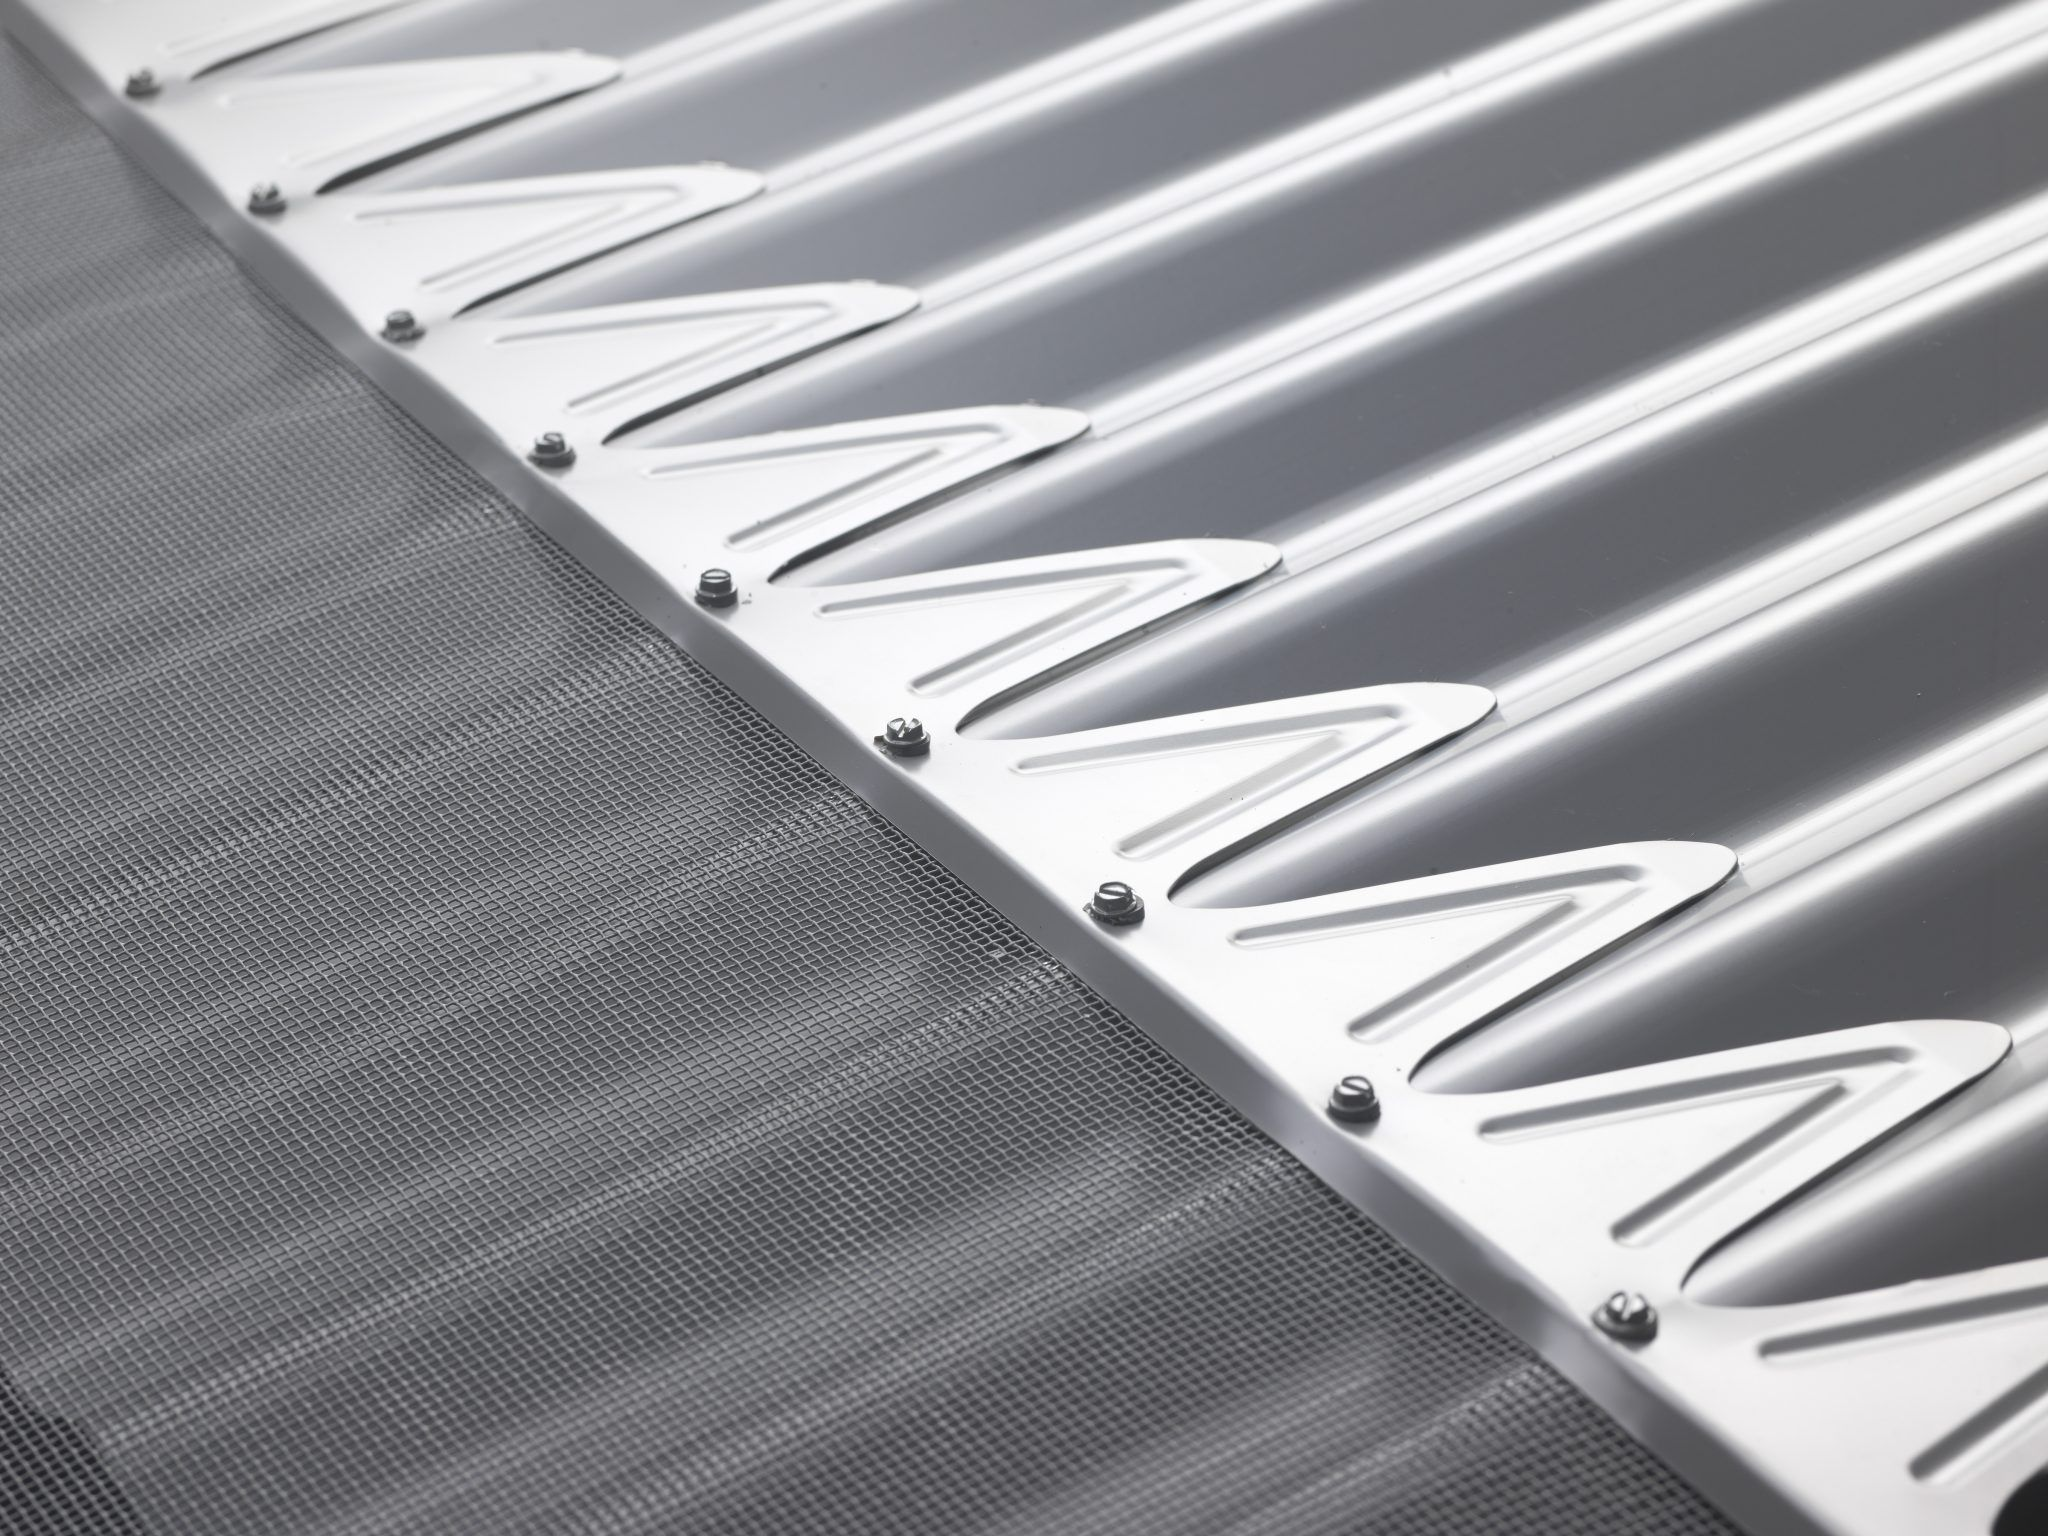 Gutter Cleaning And Gutter Guard Installation In 2020 Gutter Guard Cleaning Gutters Gutter Mesh